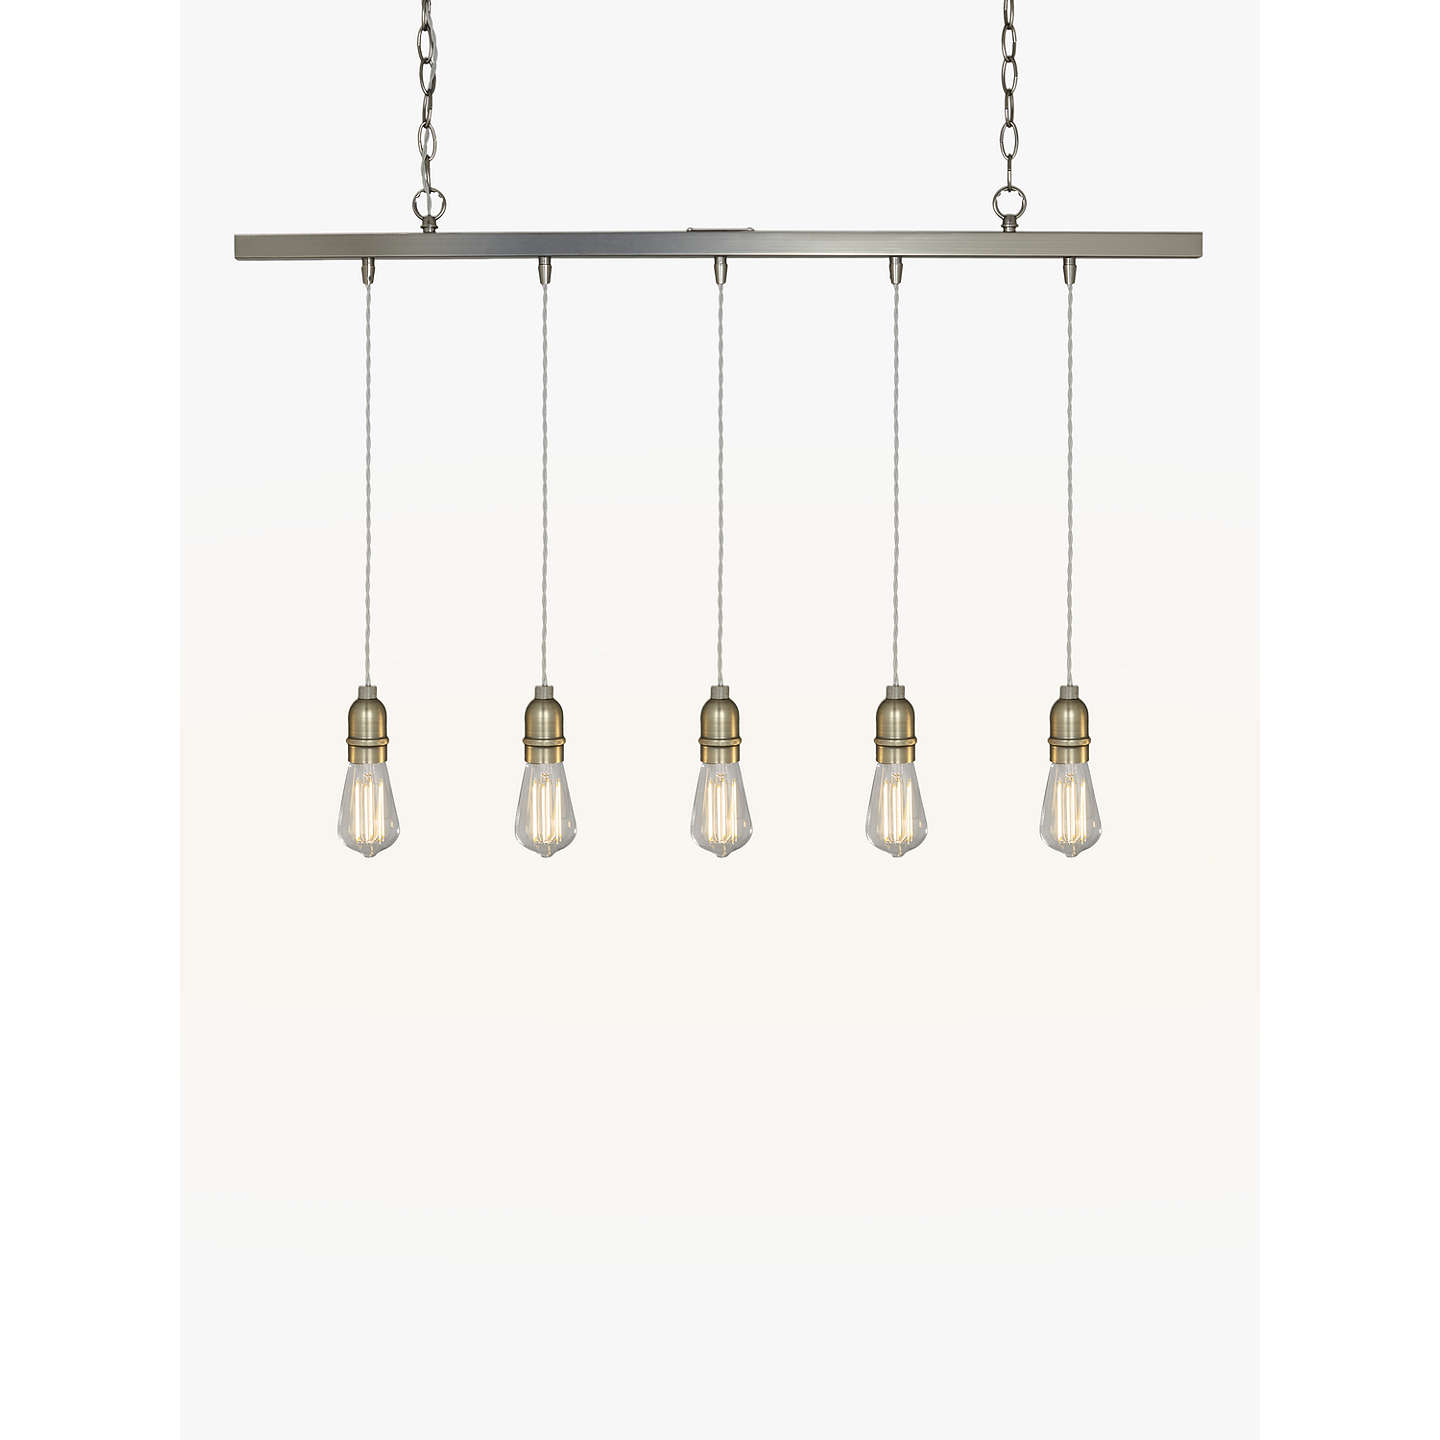 John lewis bistro bar pendant ceiling light 5 light pewter at john buyjohn lewis bistro bar pendant ceiling light 5 light pewter online at johnlewis mozeypictures Image collections